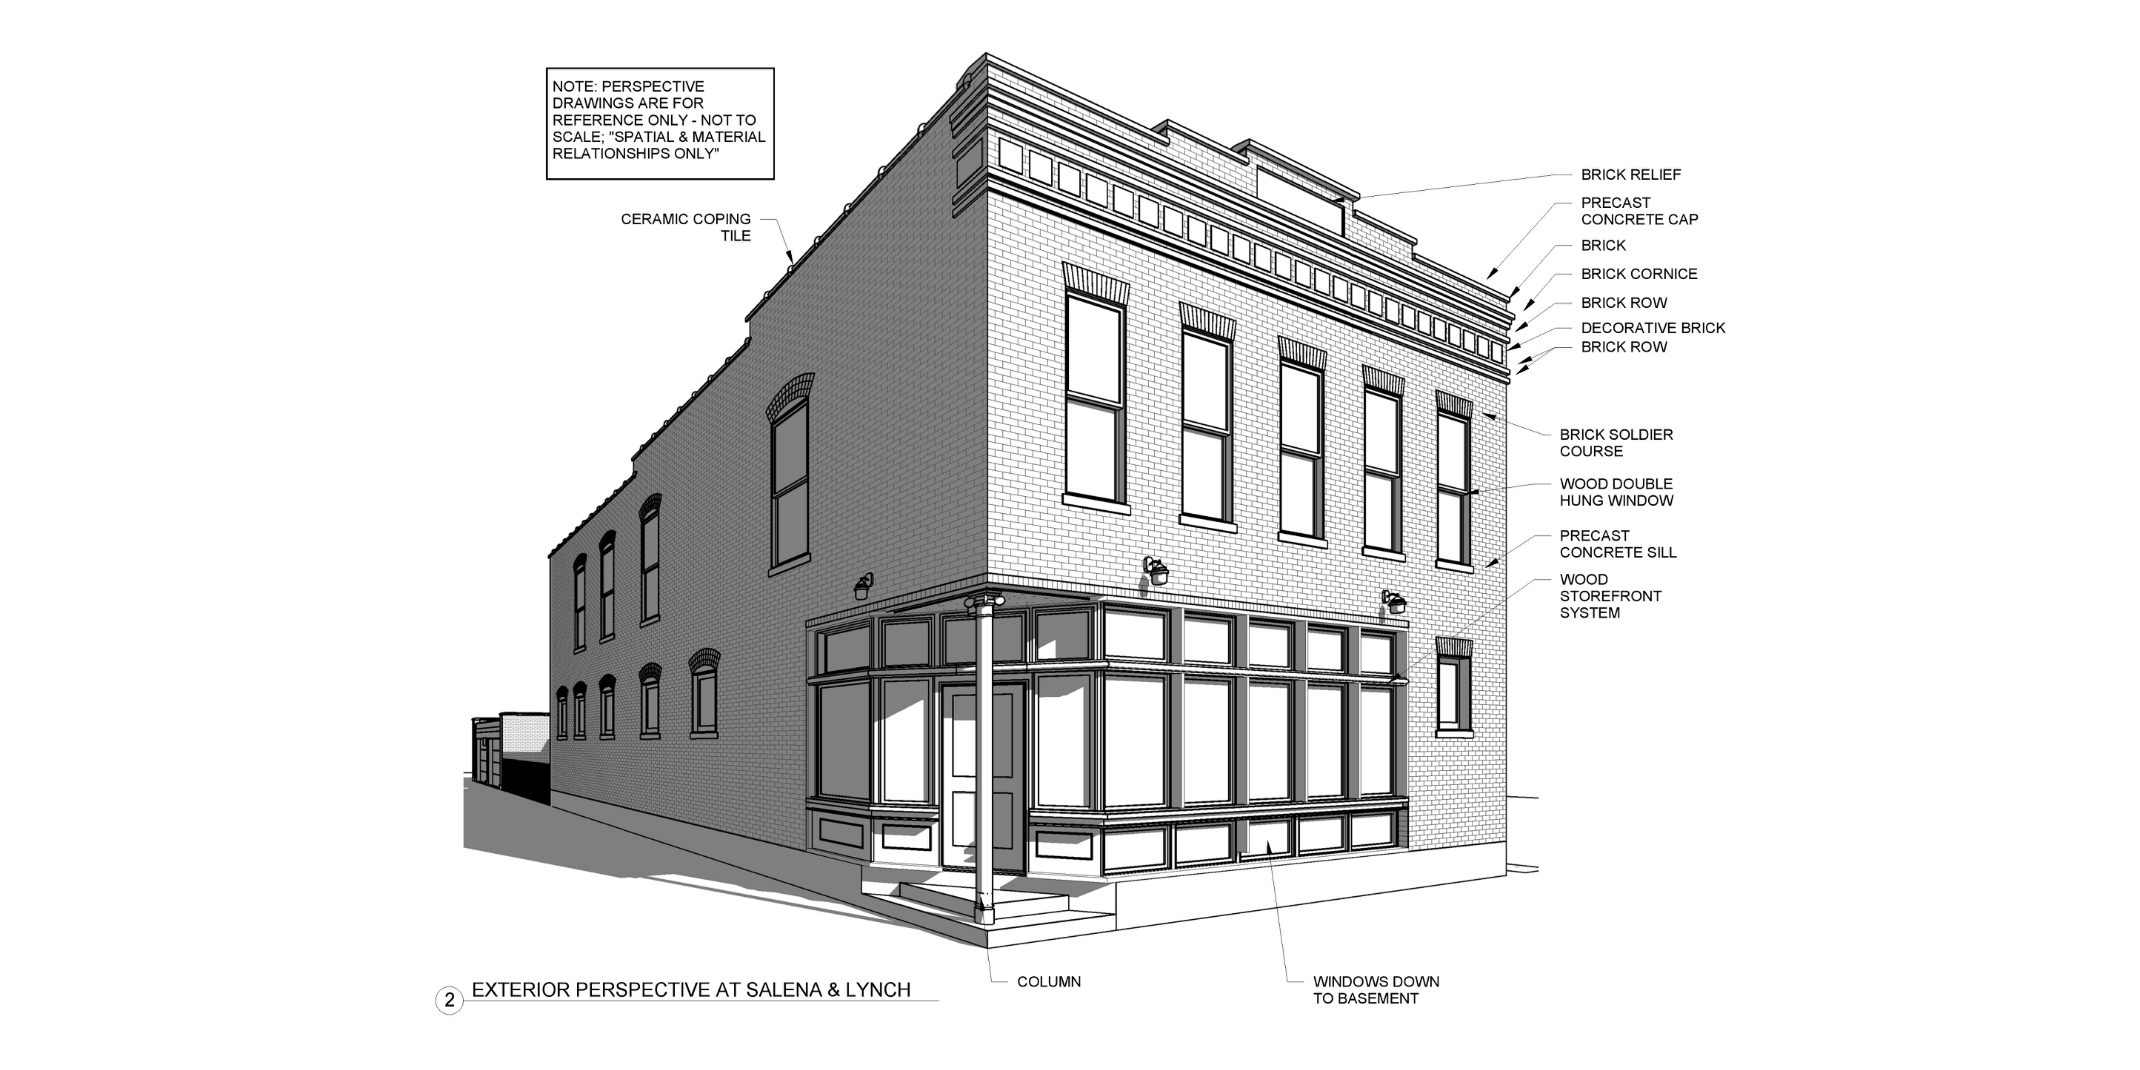 Benton Park Retail Corner Residential Infill Takes Historic Replica to a New Level